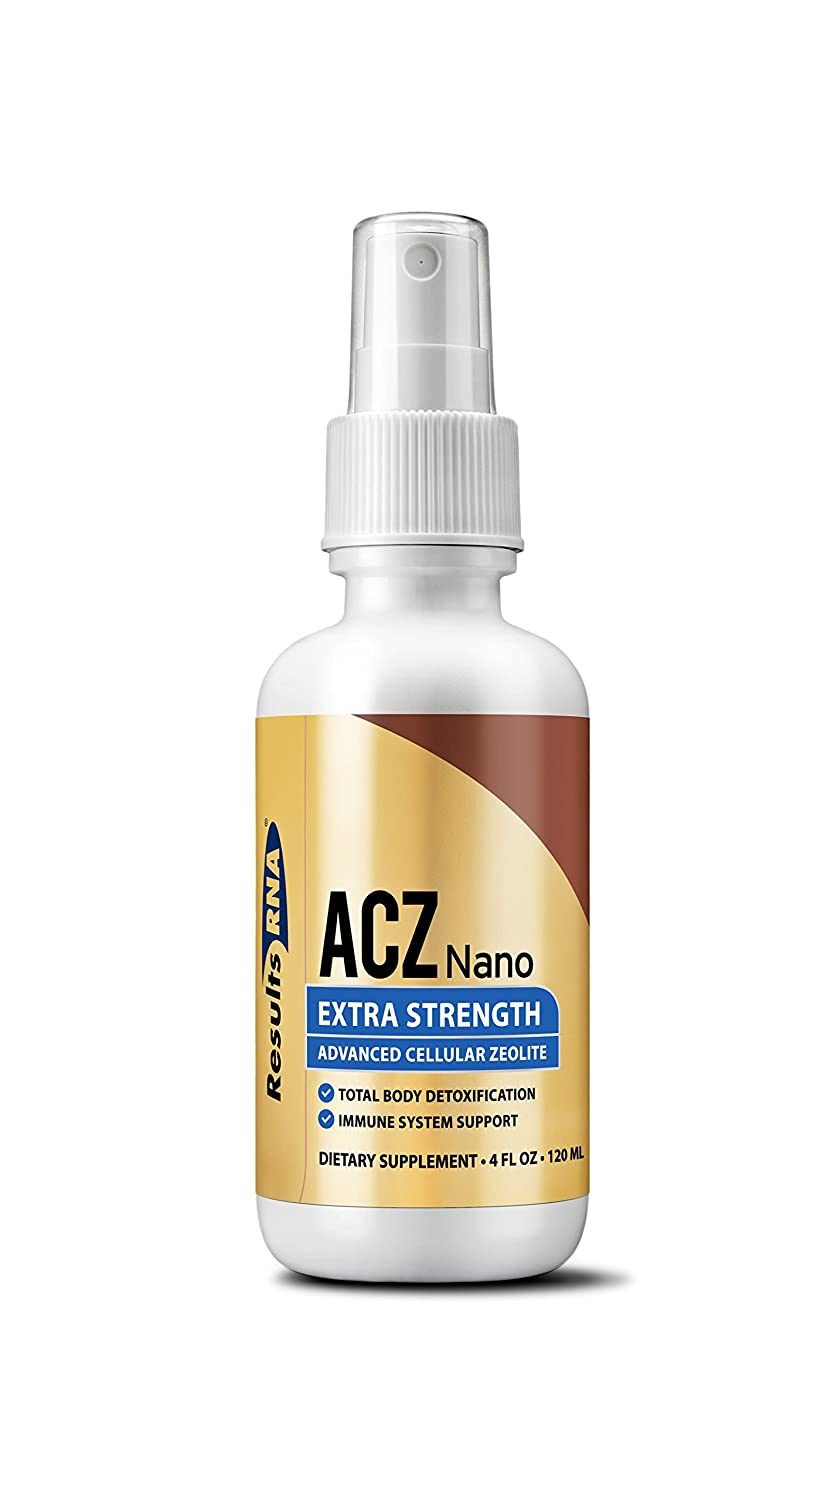 Results RNA ACZ Nano Advanced Cellular Zeolite Extra Strength Great For Total Body Detoxification and Immune System Health – 4oz Bottle